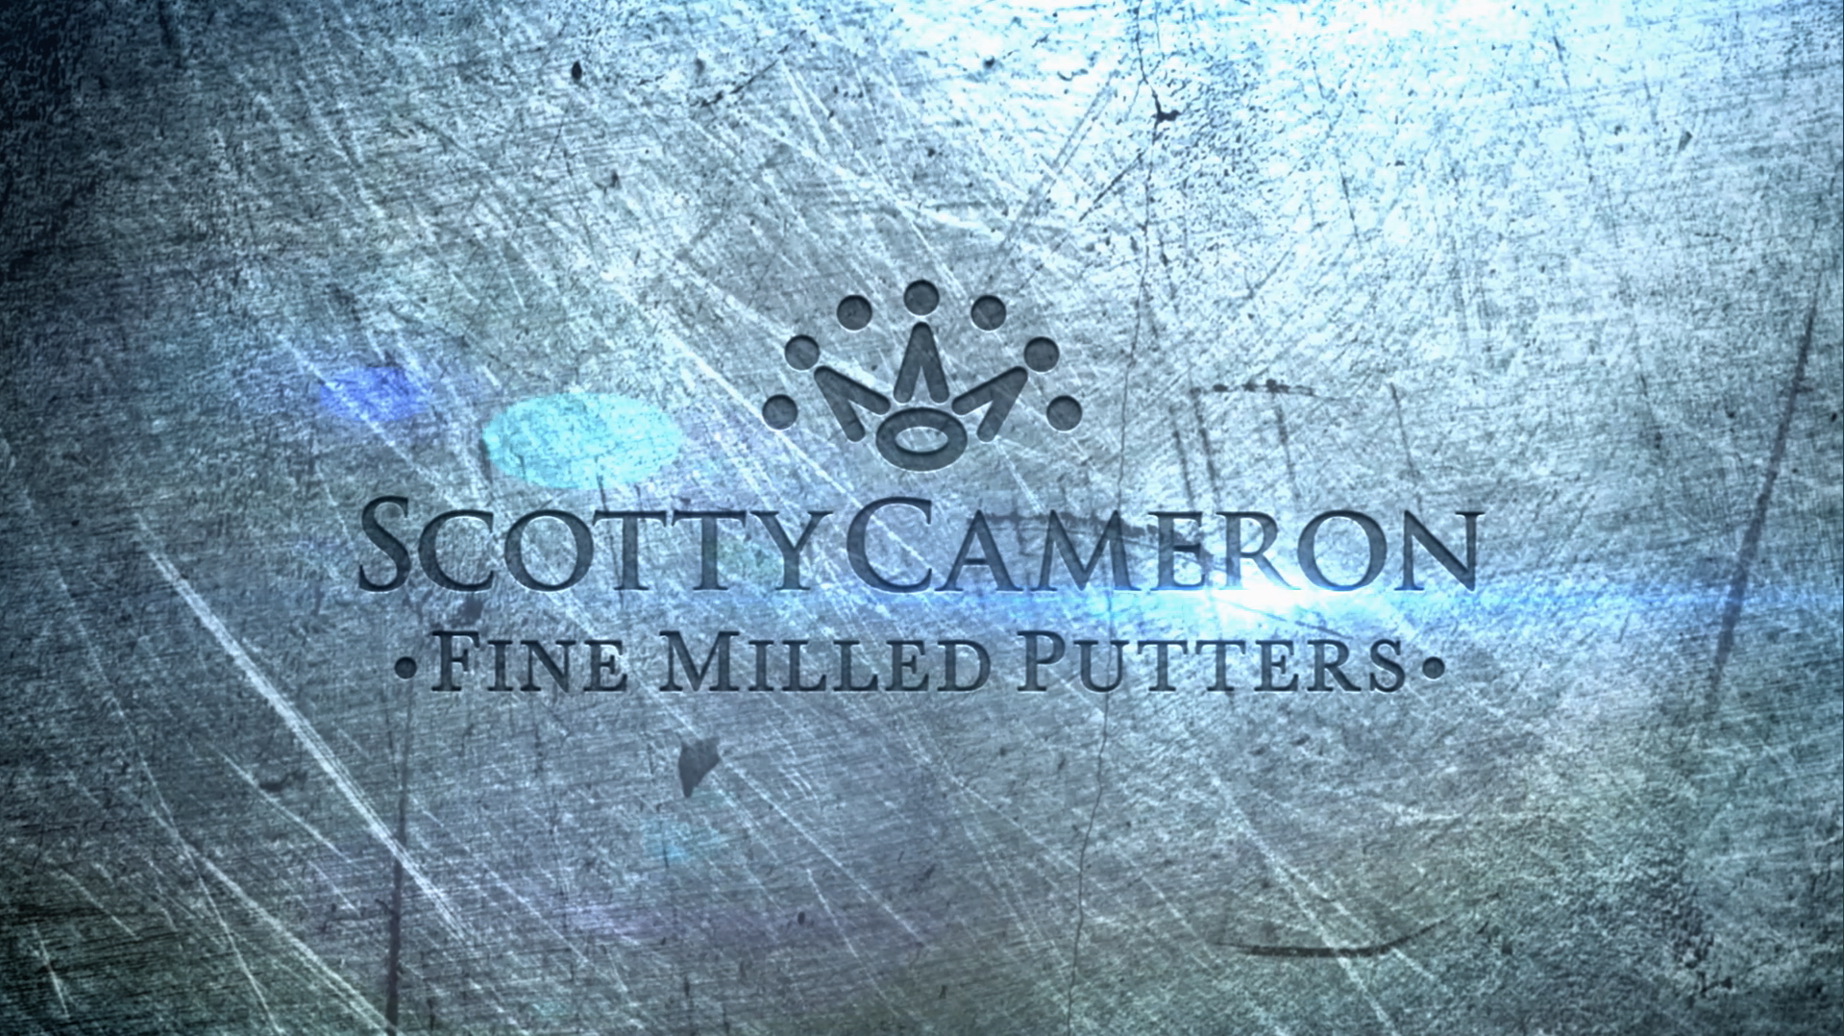 Inside the Scotty Cameron Putter Studio in Southern California my 1844x1036